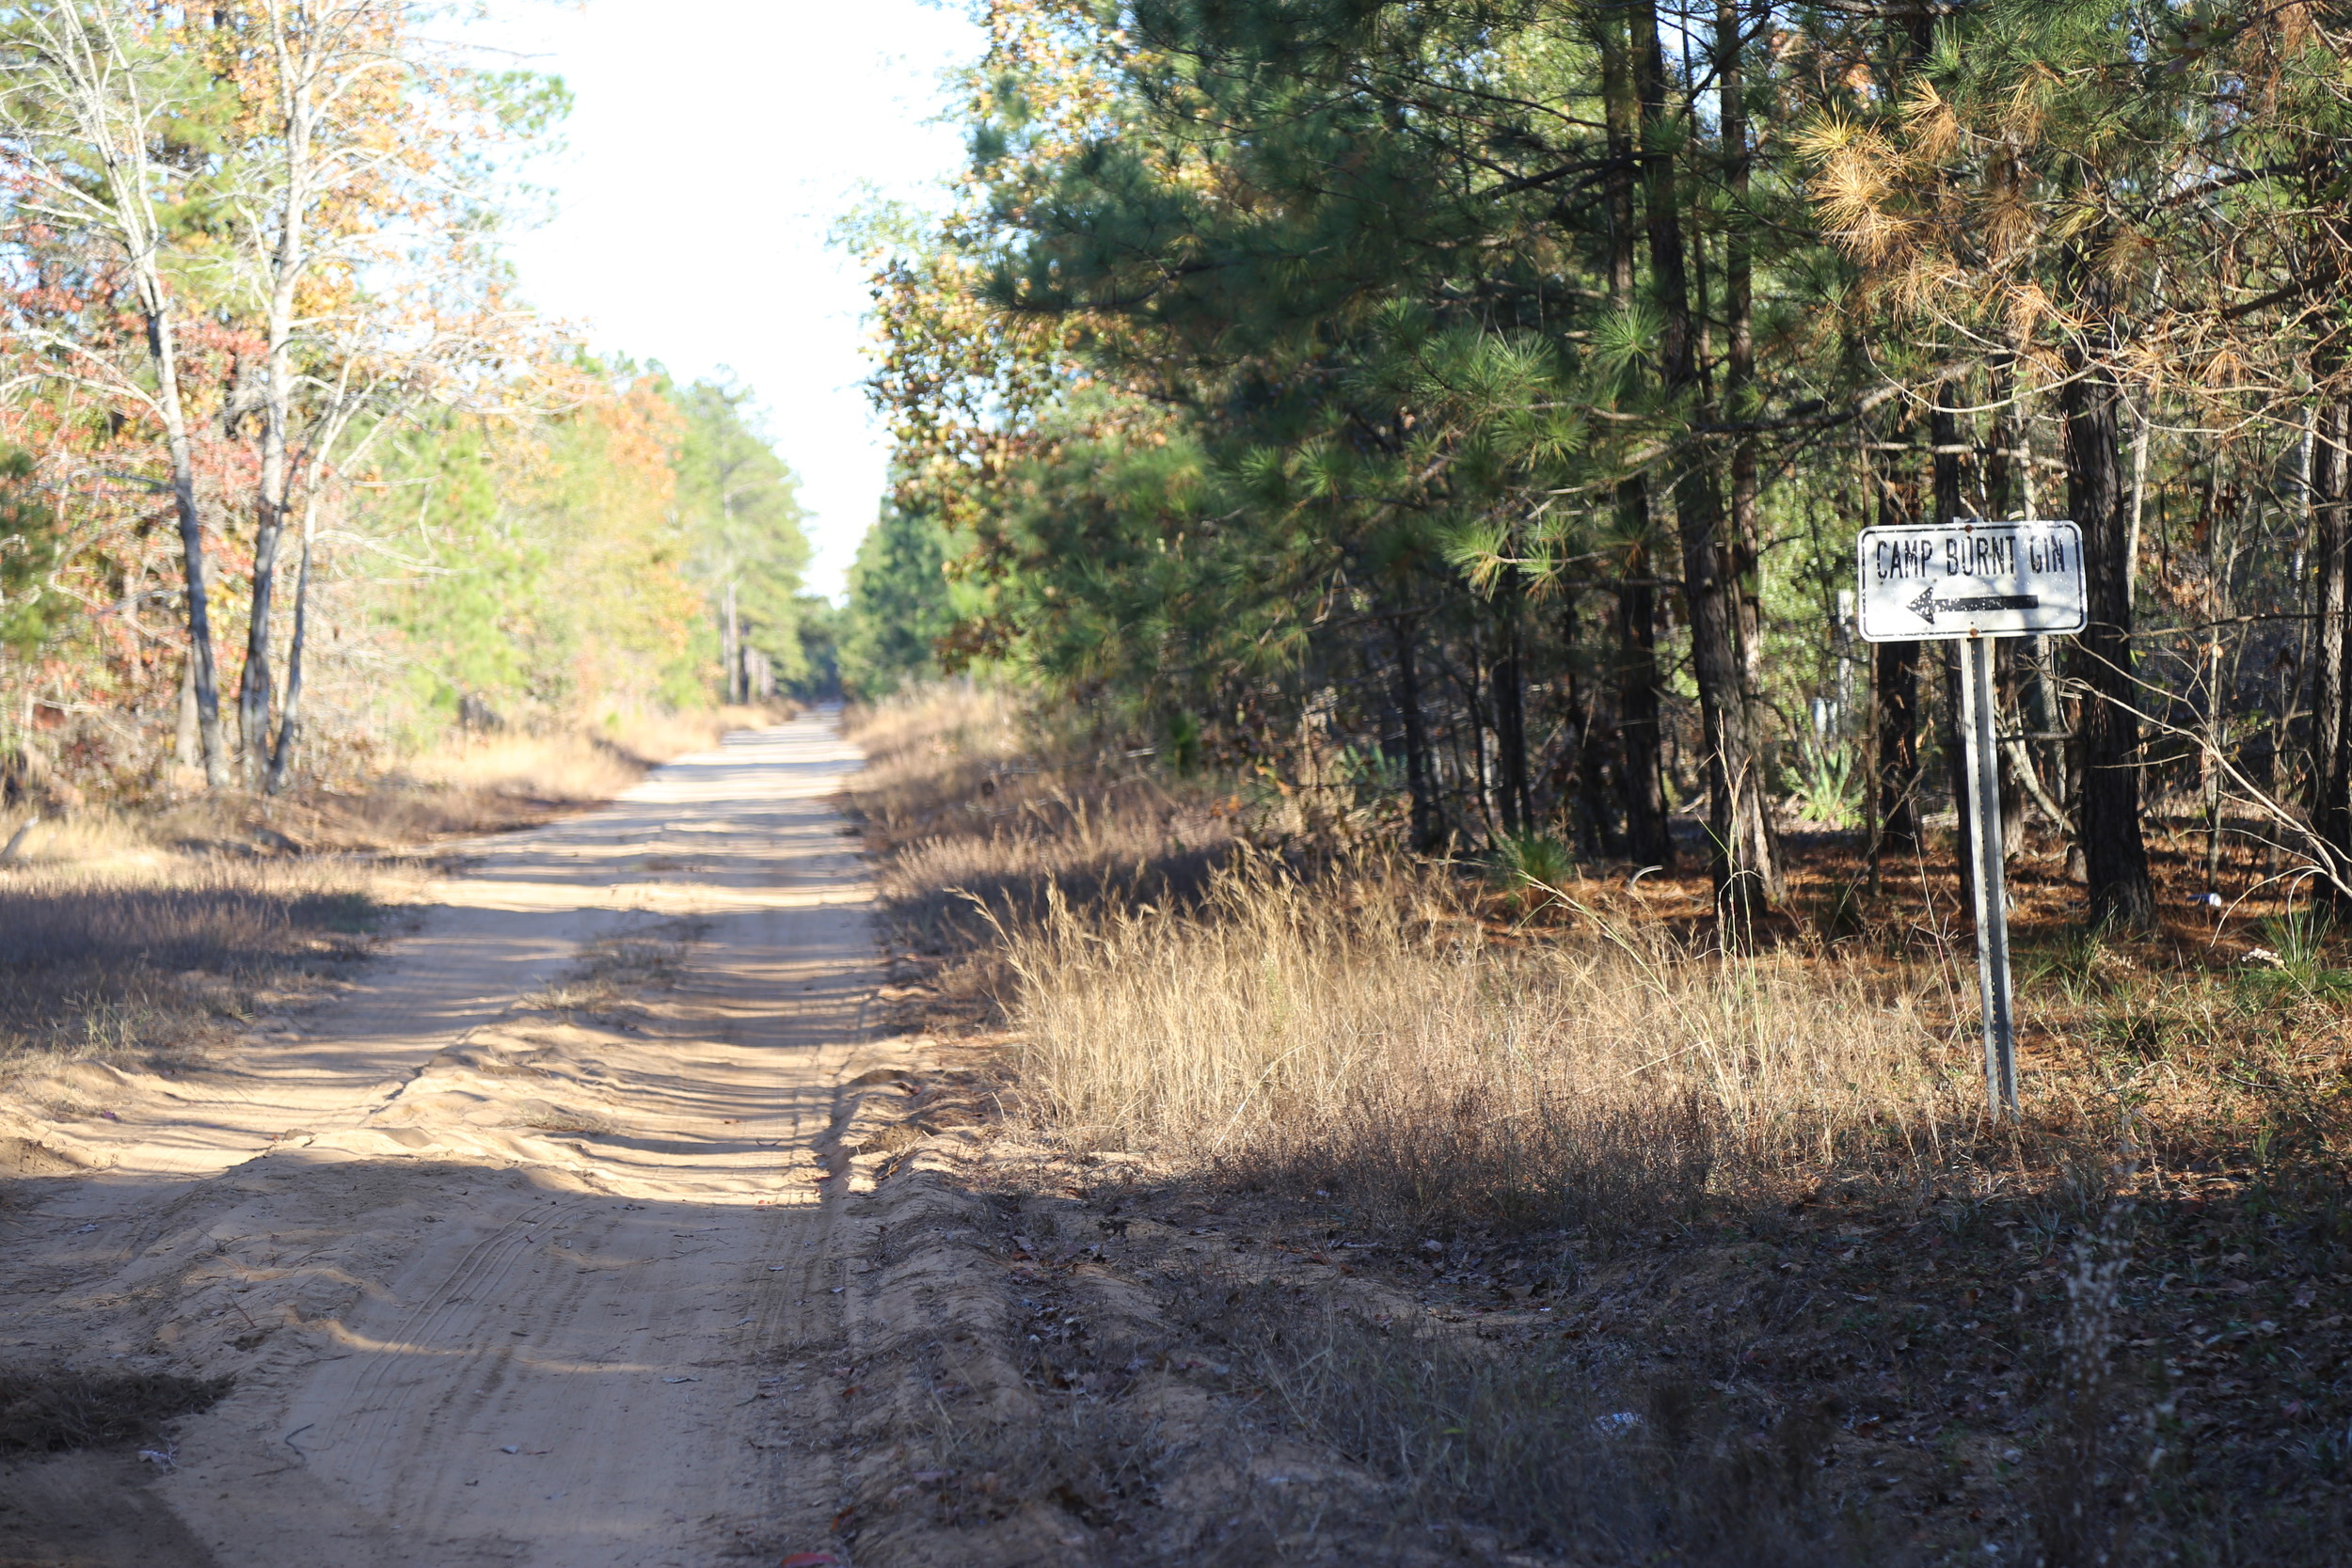 A shallow grave was discovered off this road Thursday by a man canvassing the area for places to put hunting cameras.